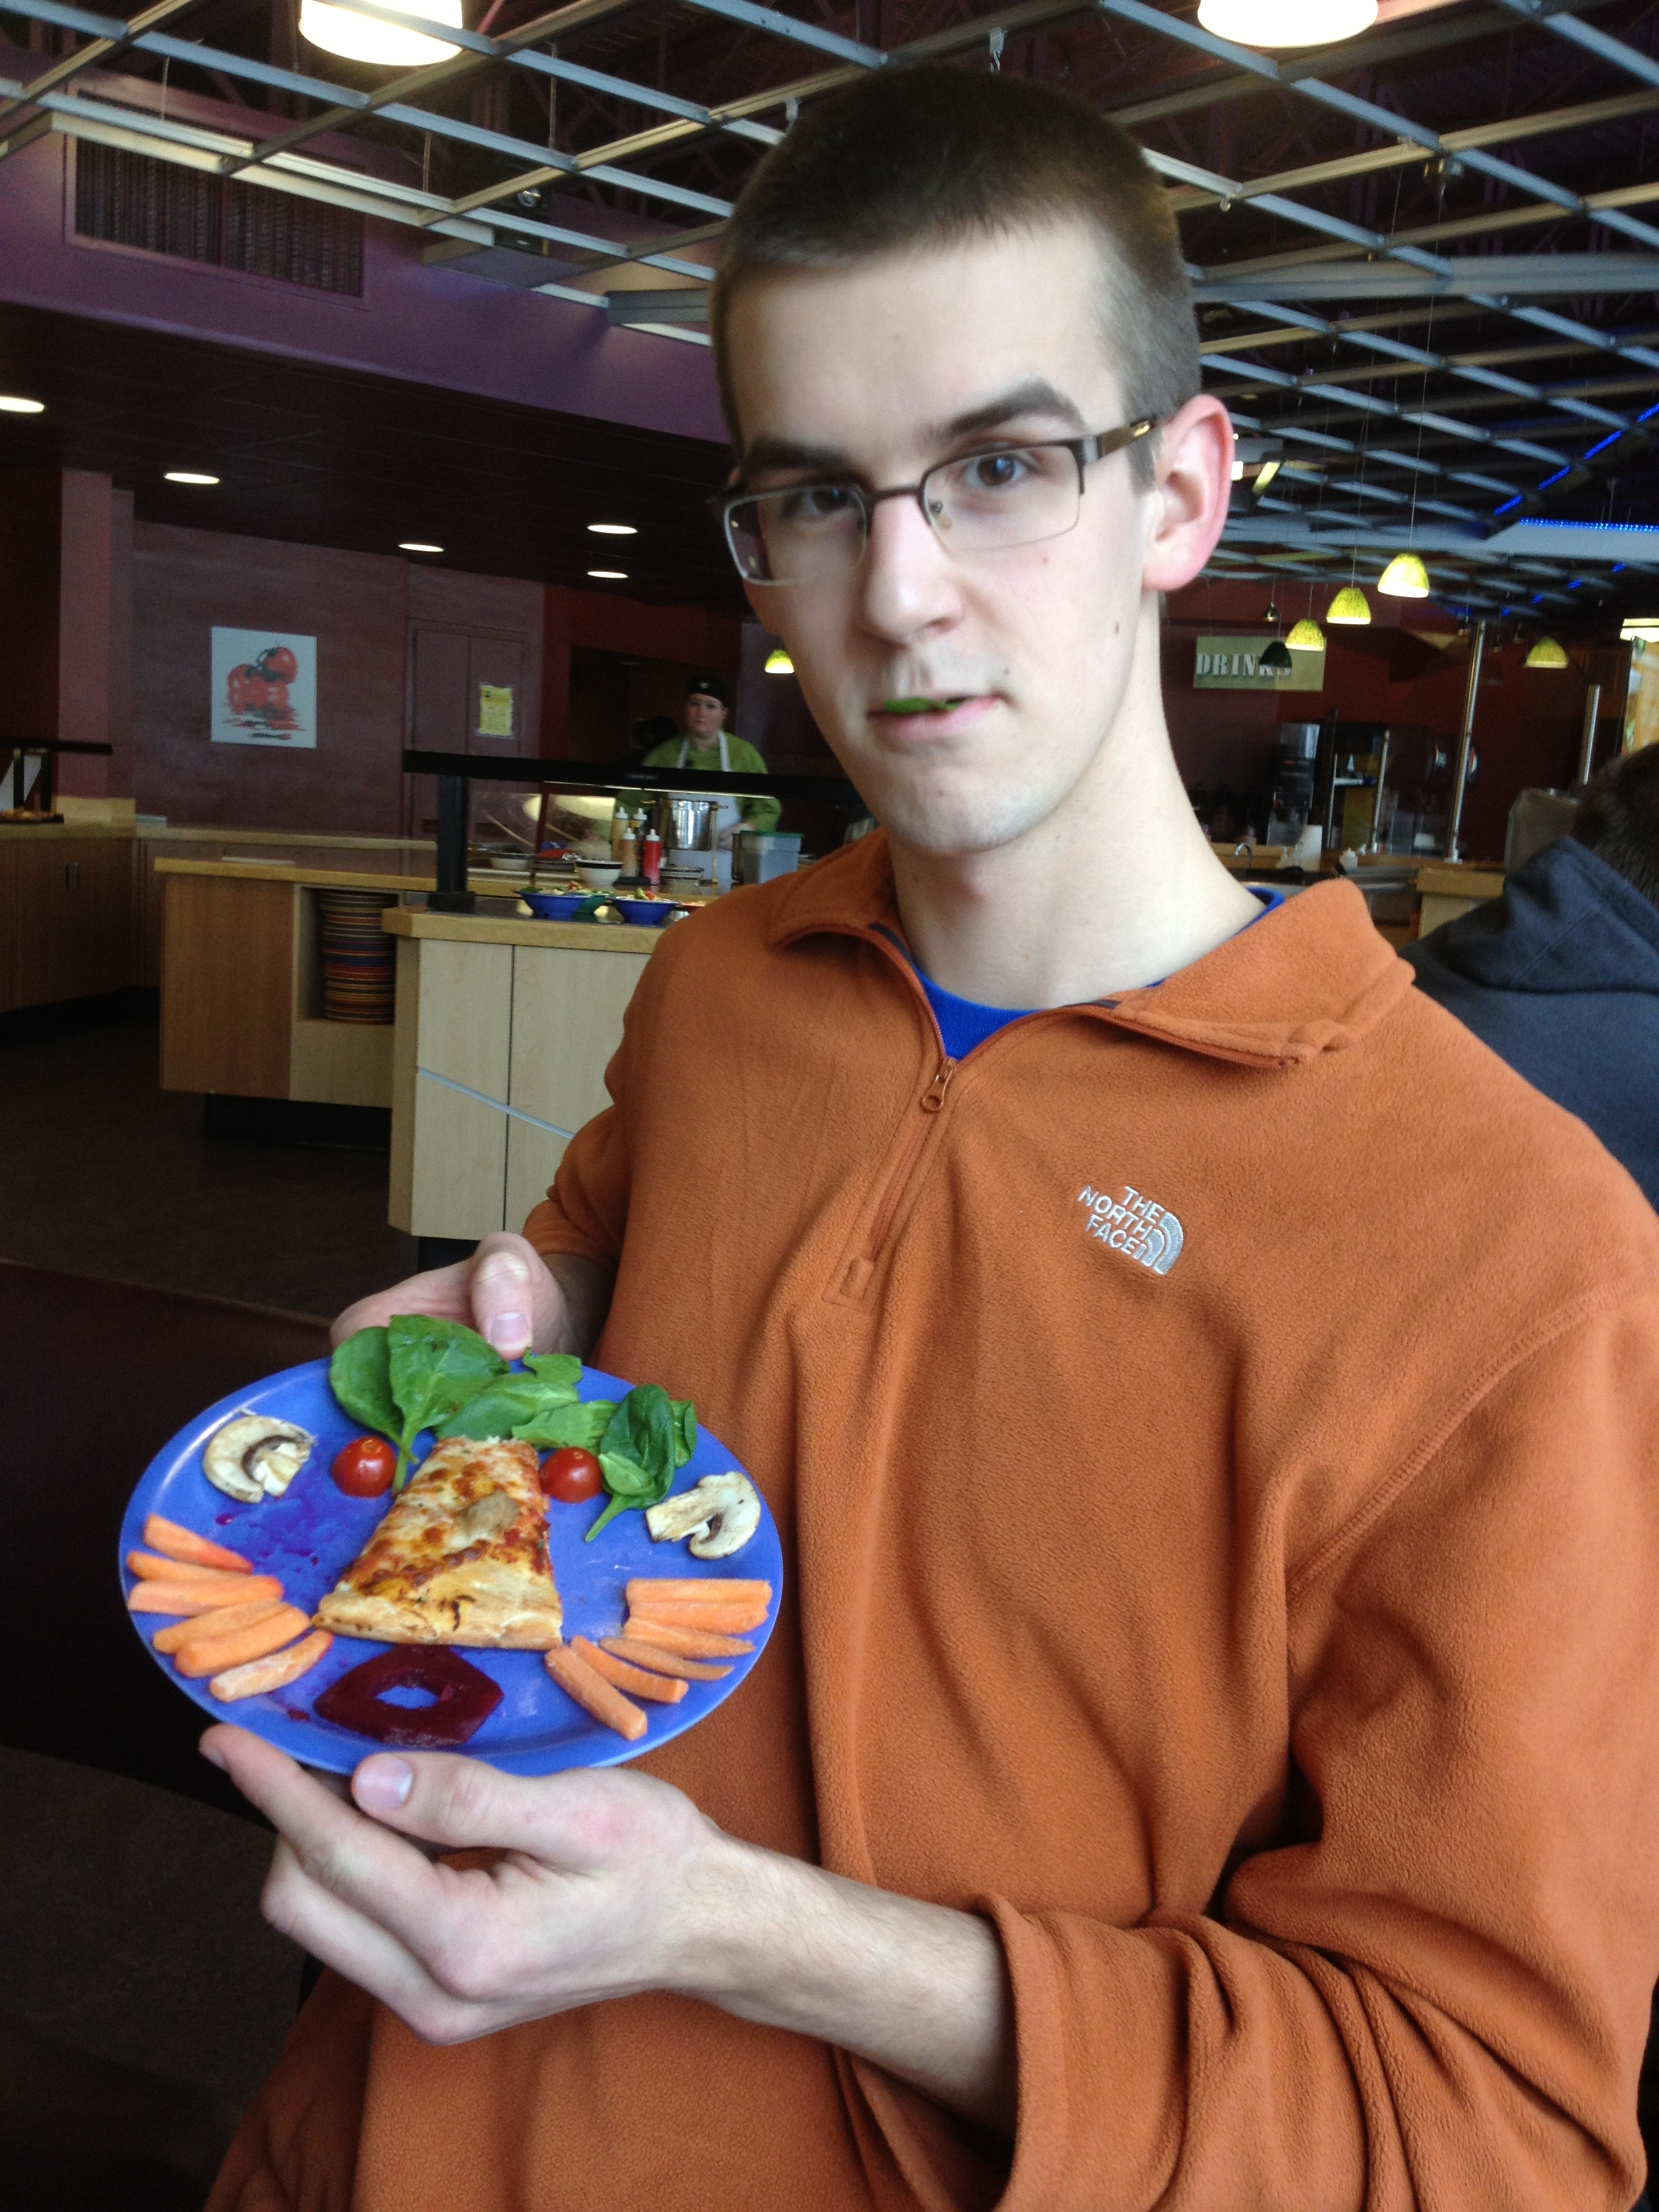 John Miller poses with a plate of food that he has arranged to resemble a face